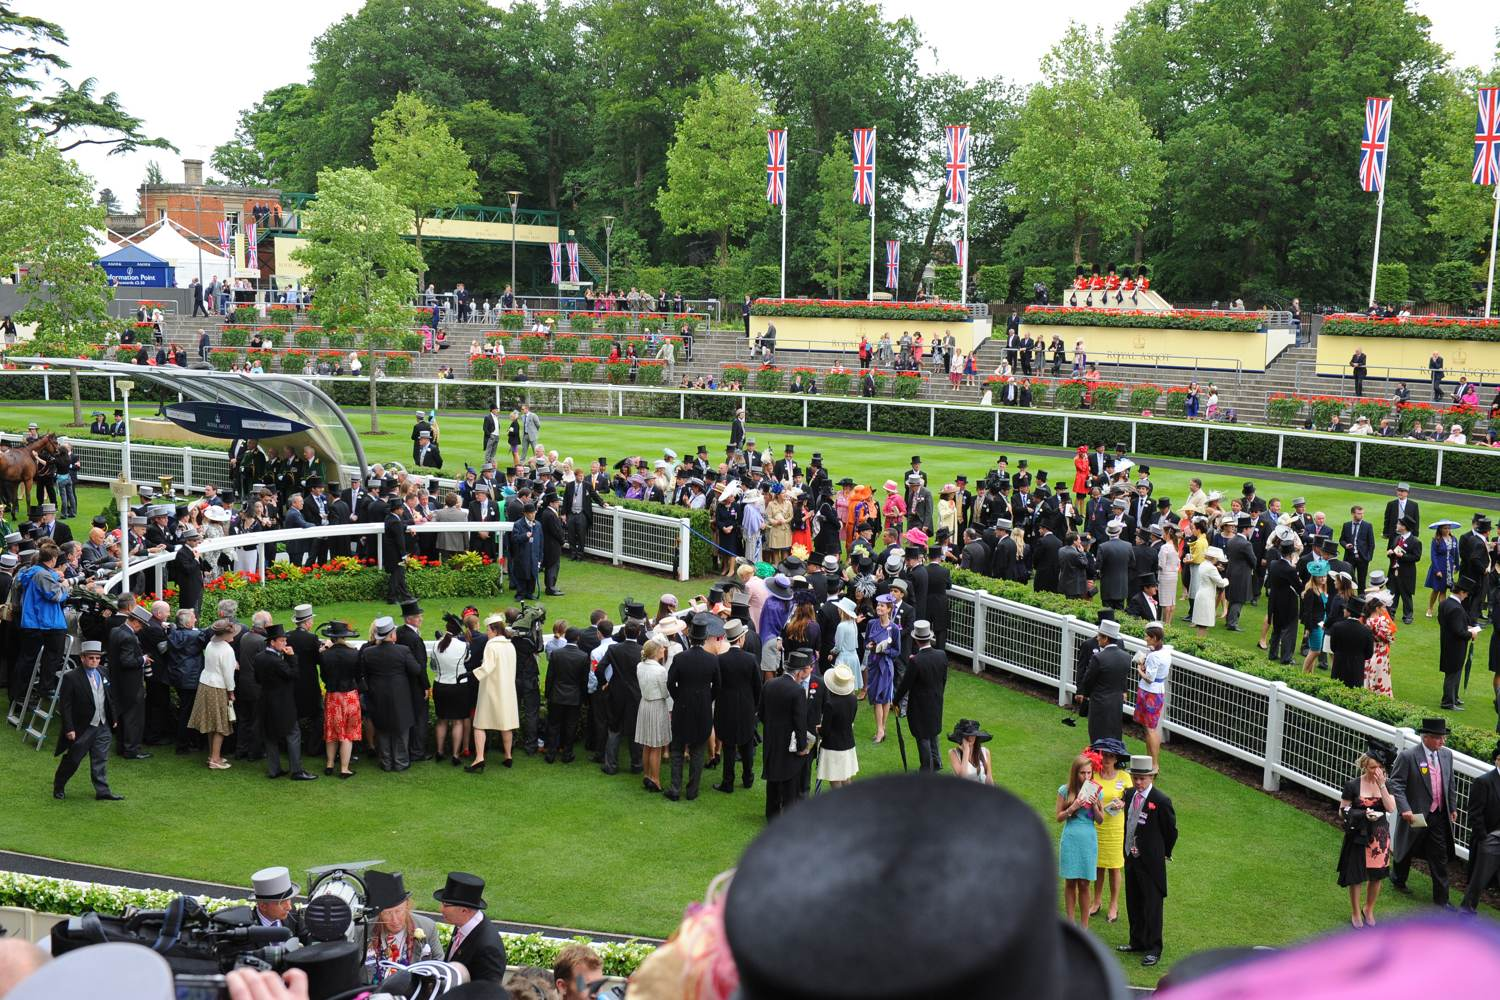 Formally dressed racegoers at Royal Ascot